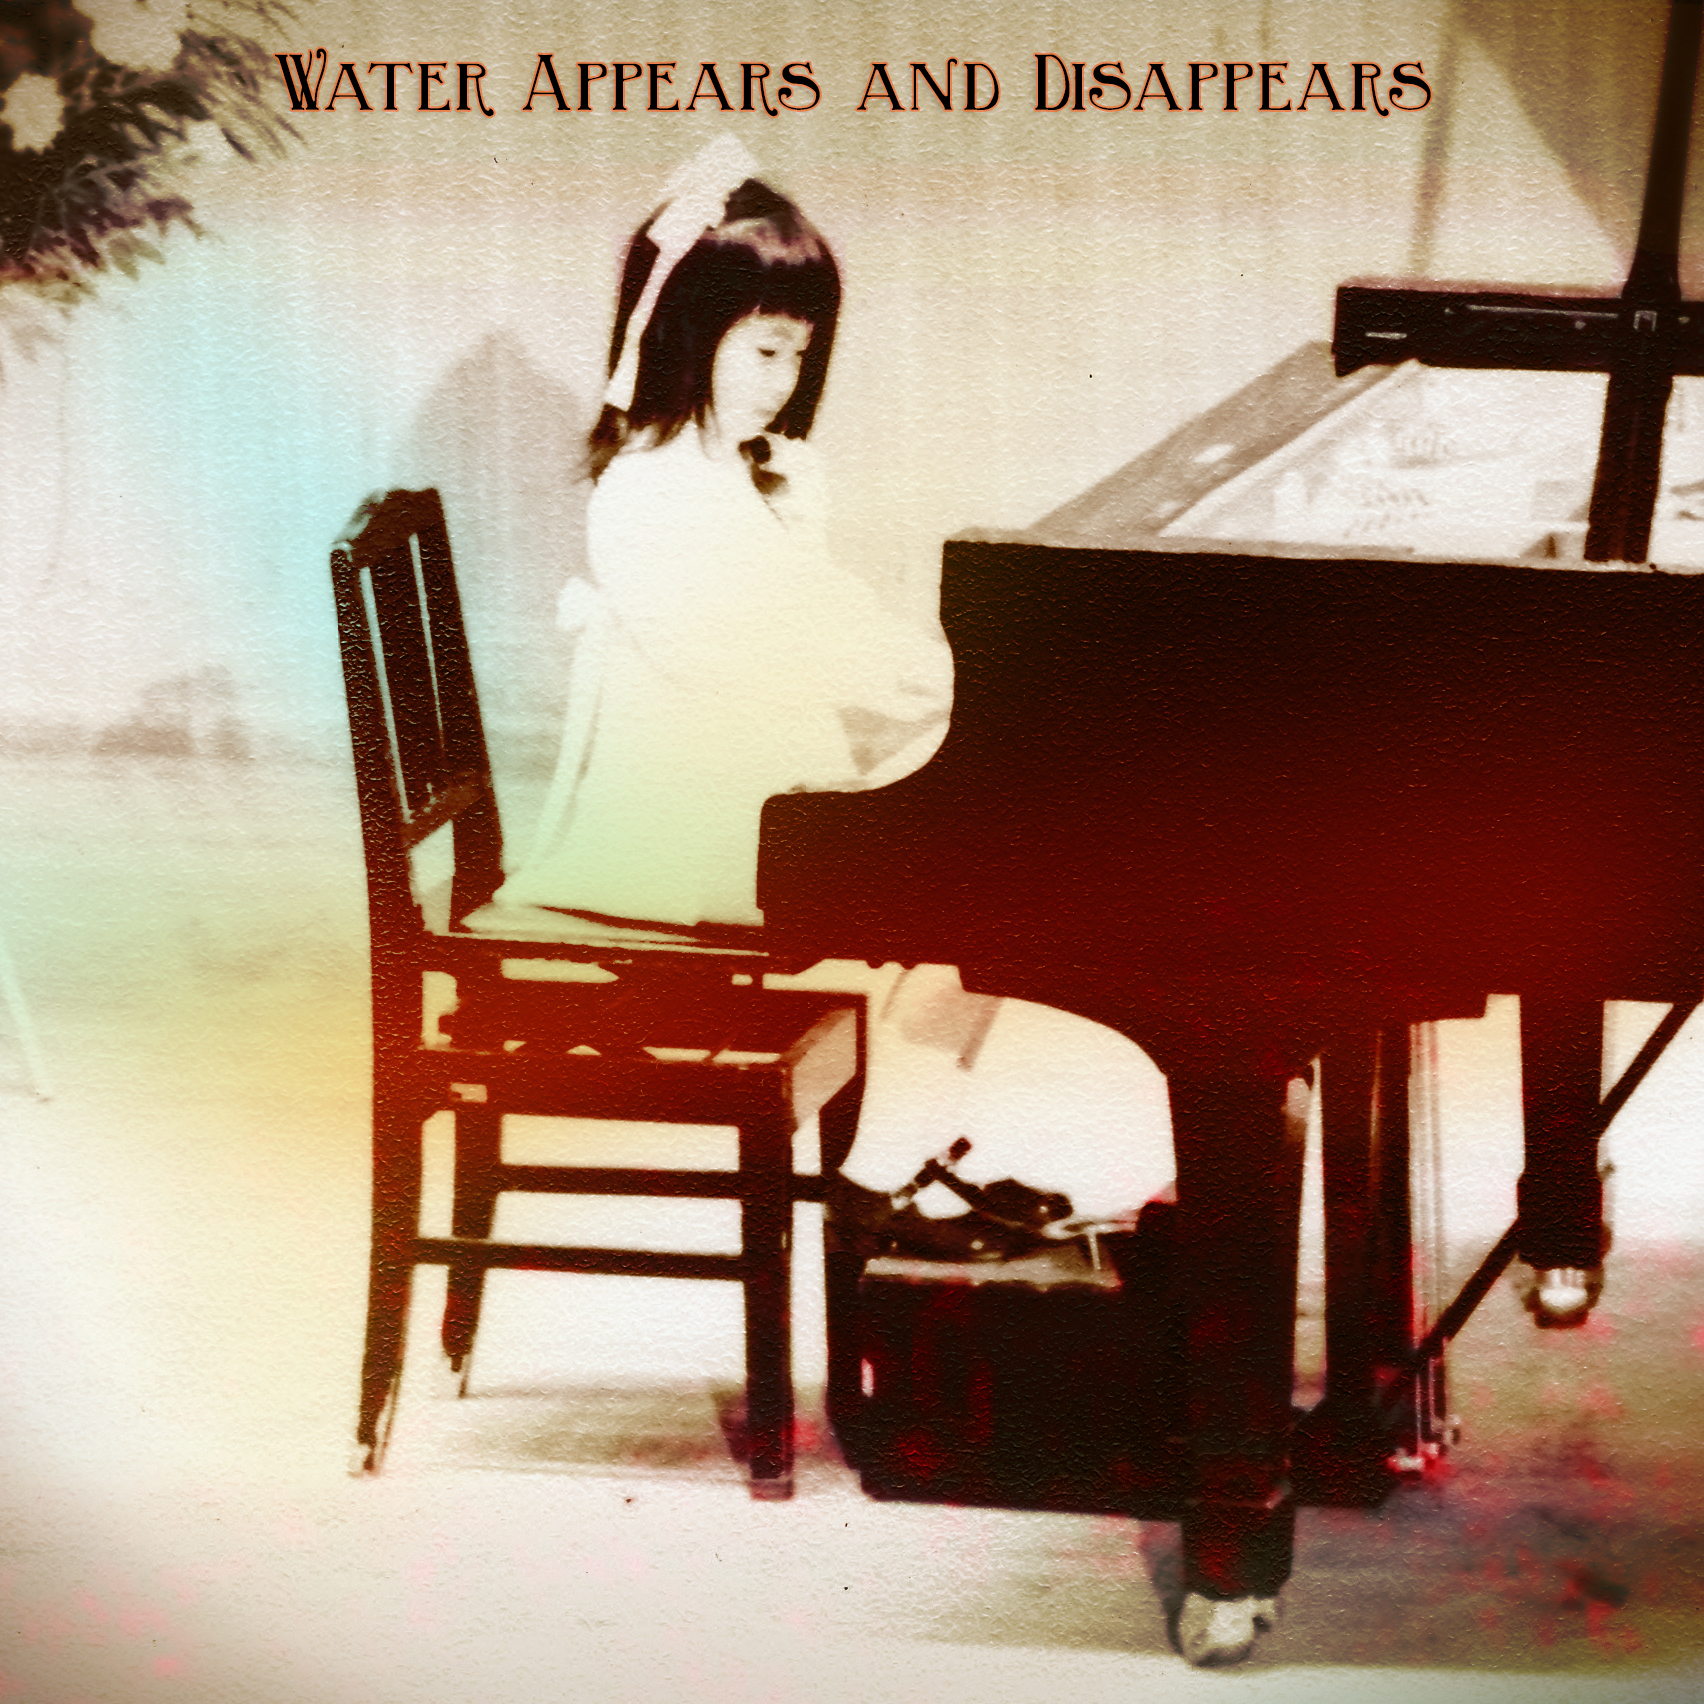 Water Appears and Disappears Sound Cover 2.jpg